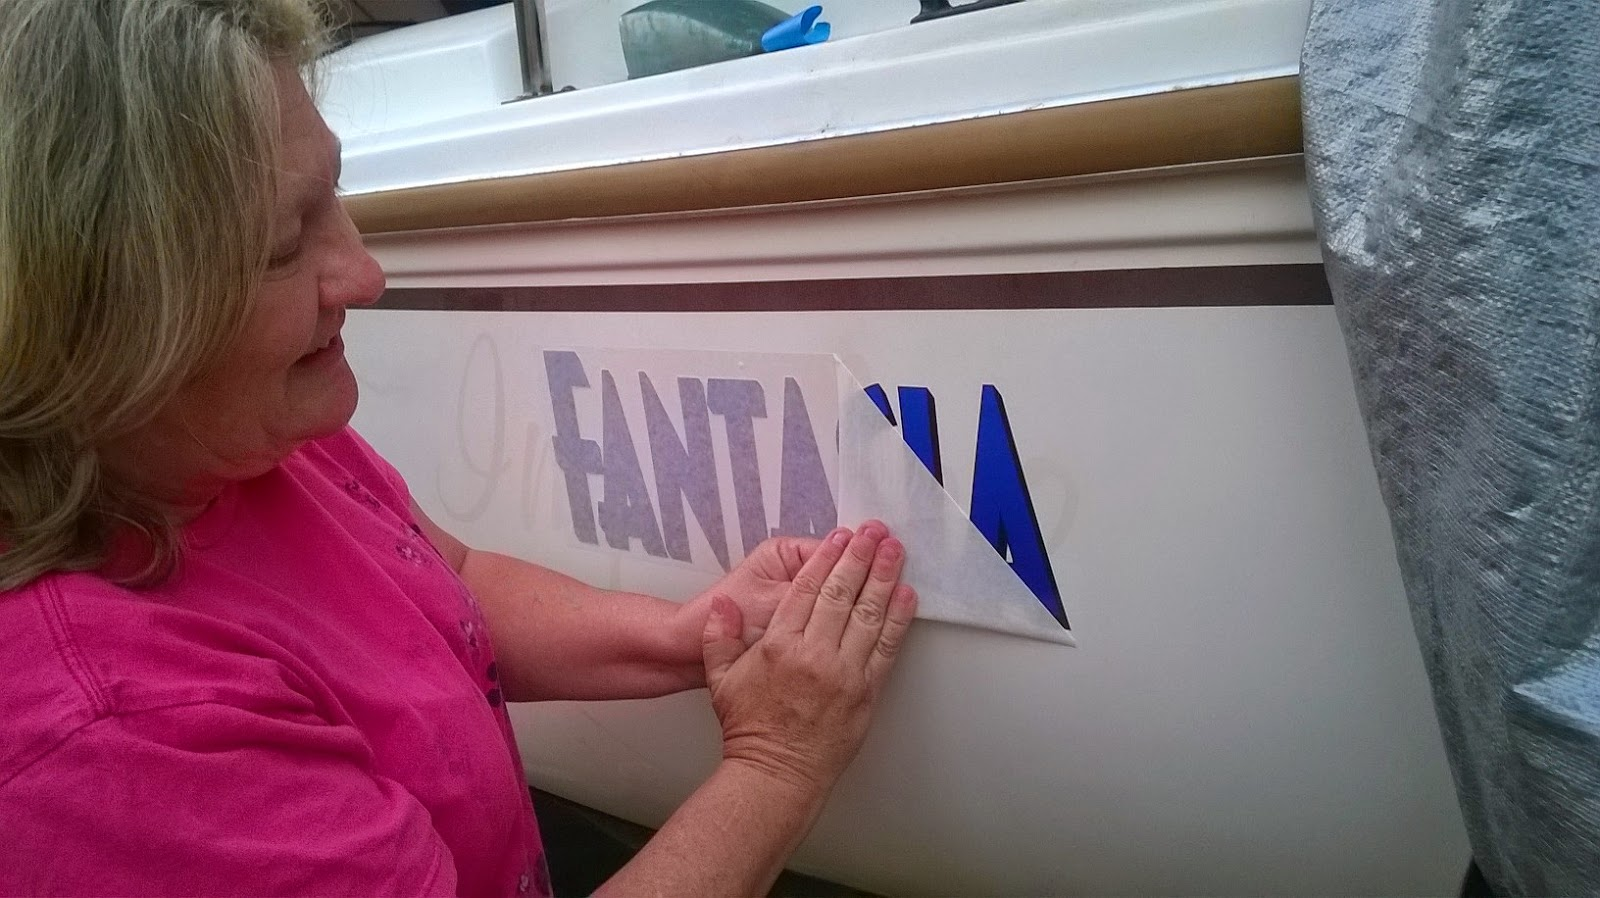 The Catalina 22 Yacht's Log: Put the New Vinyl Name on the Boat